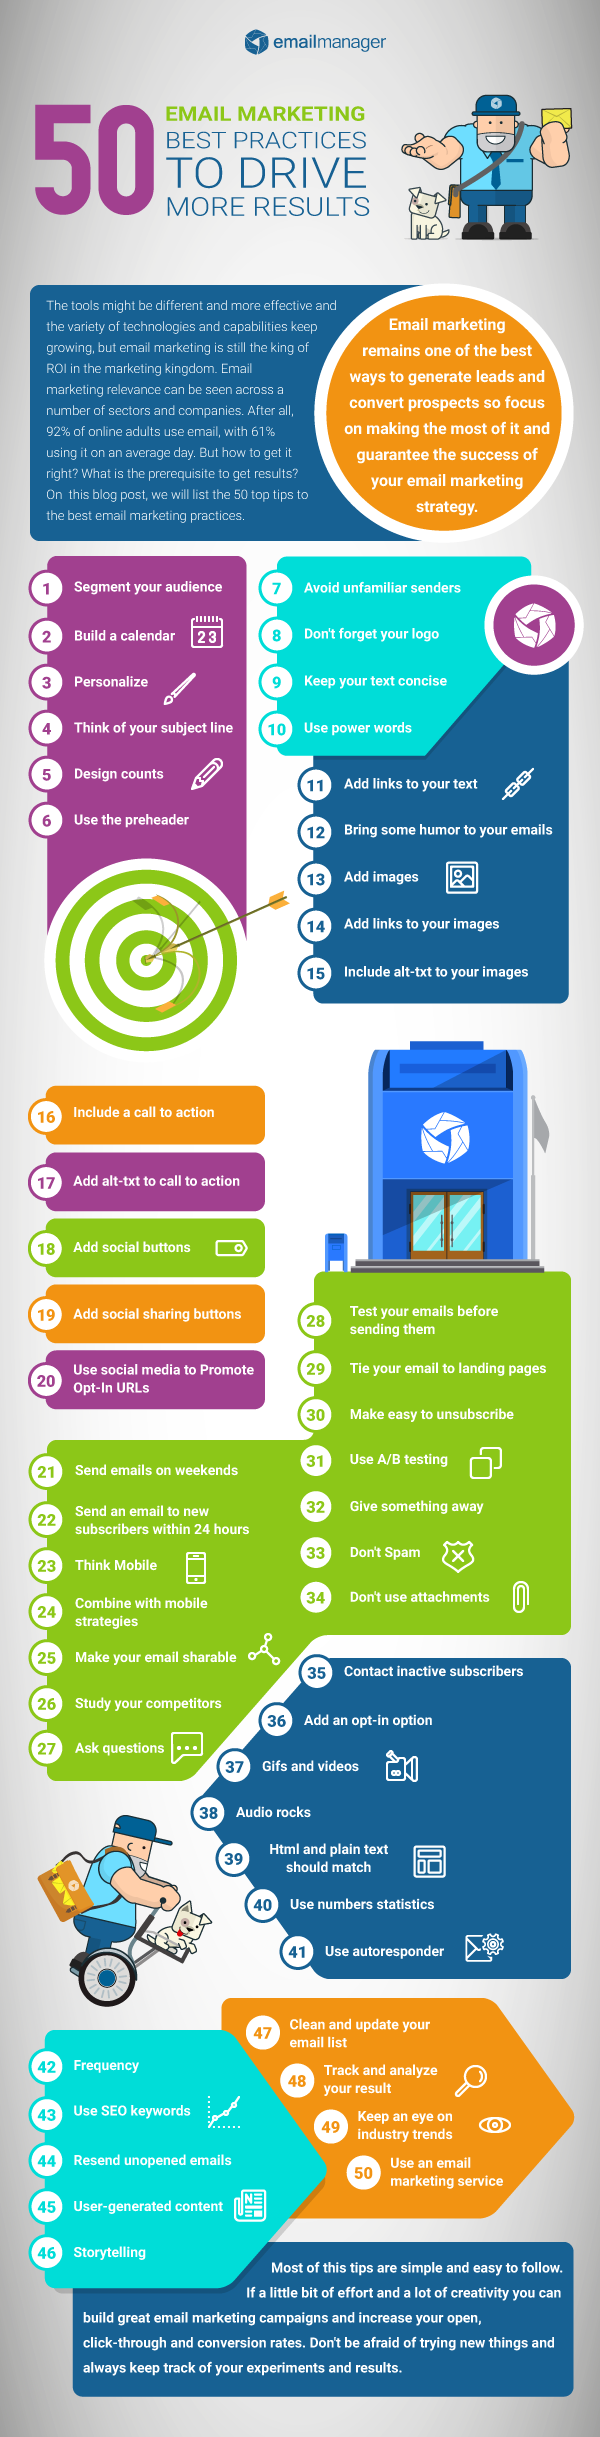 50 email marketing best practices to drive more results